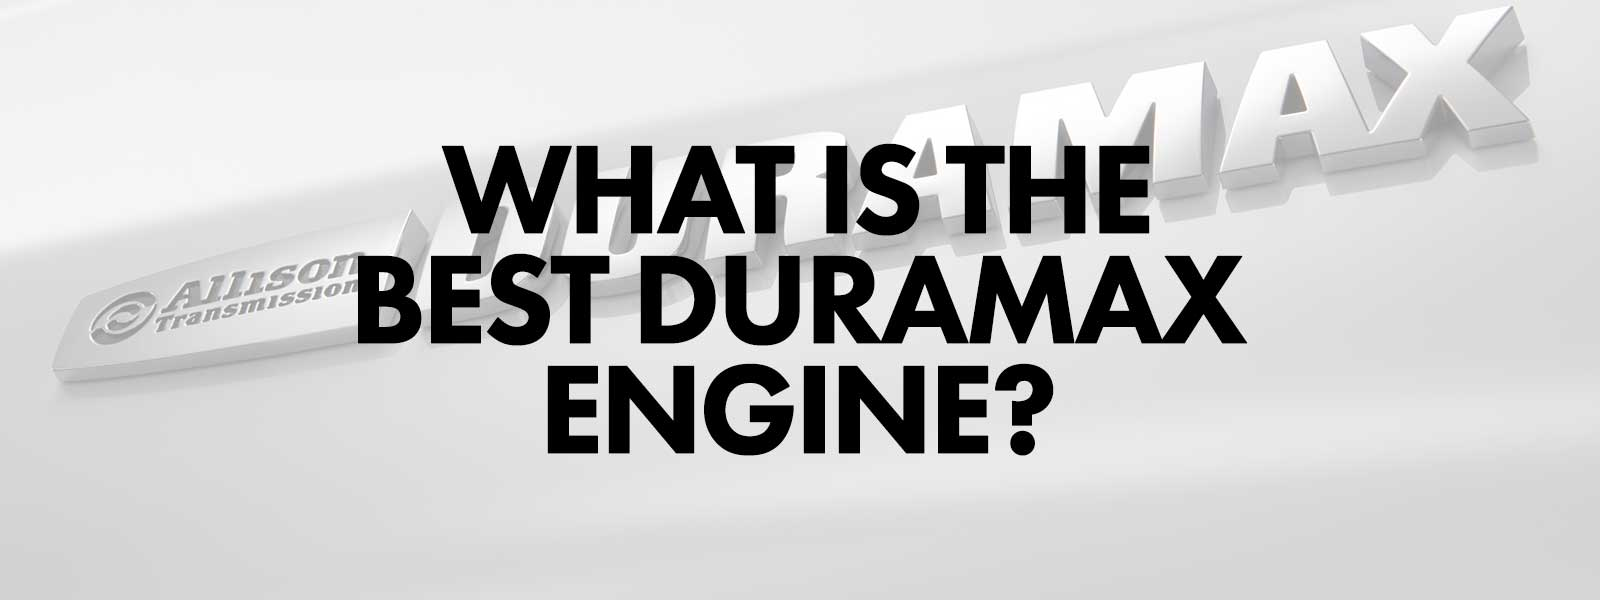 What is the Best Duramax Engine?